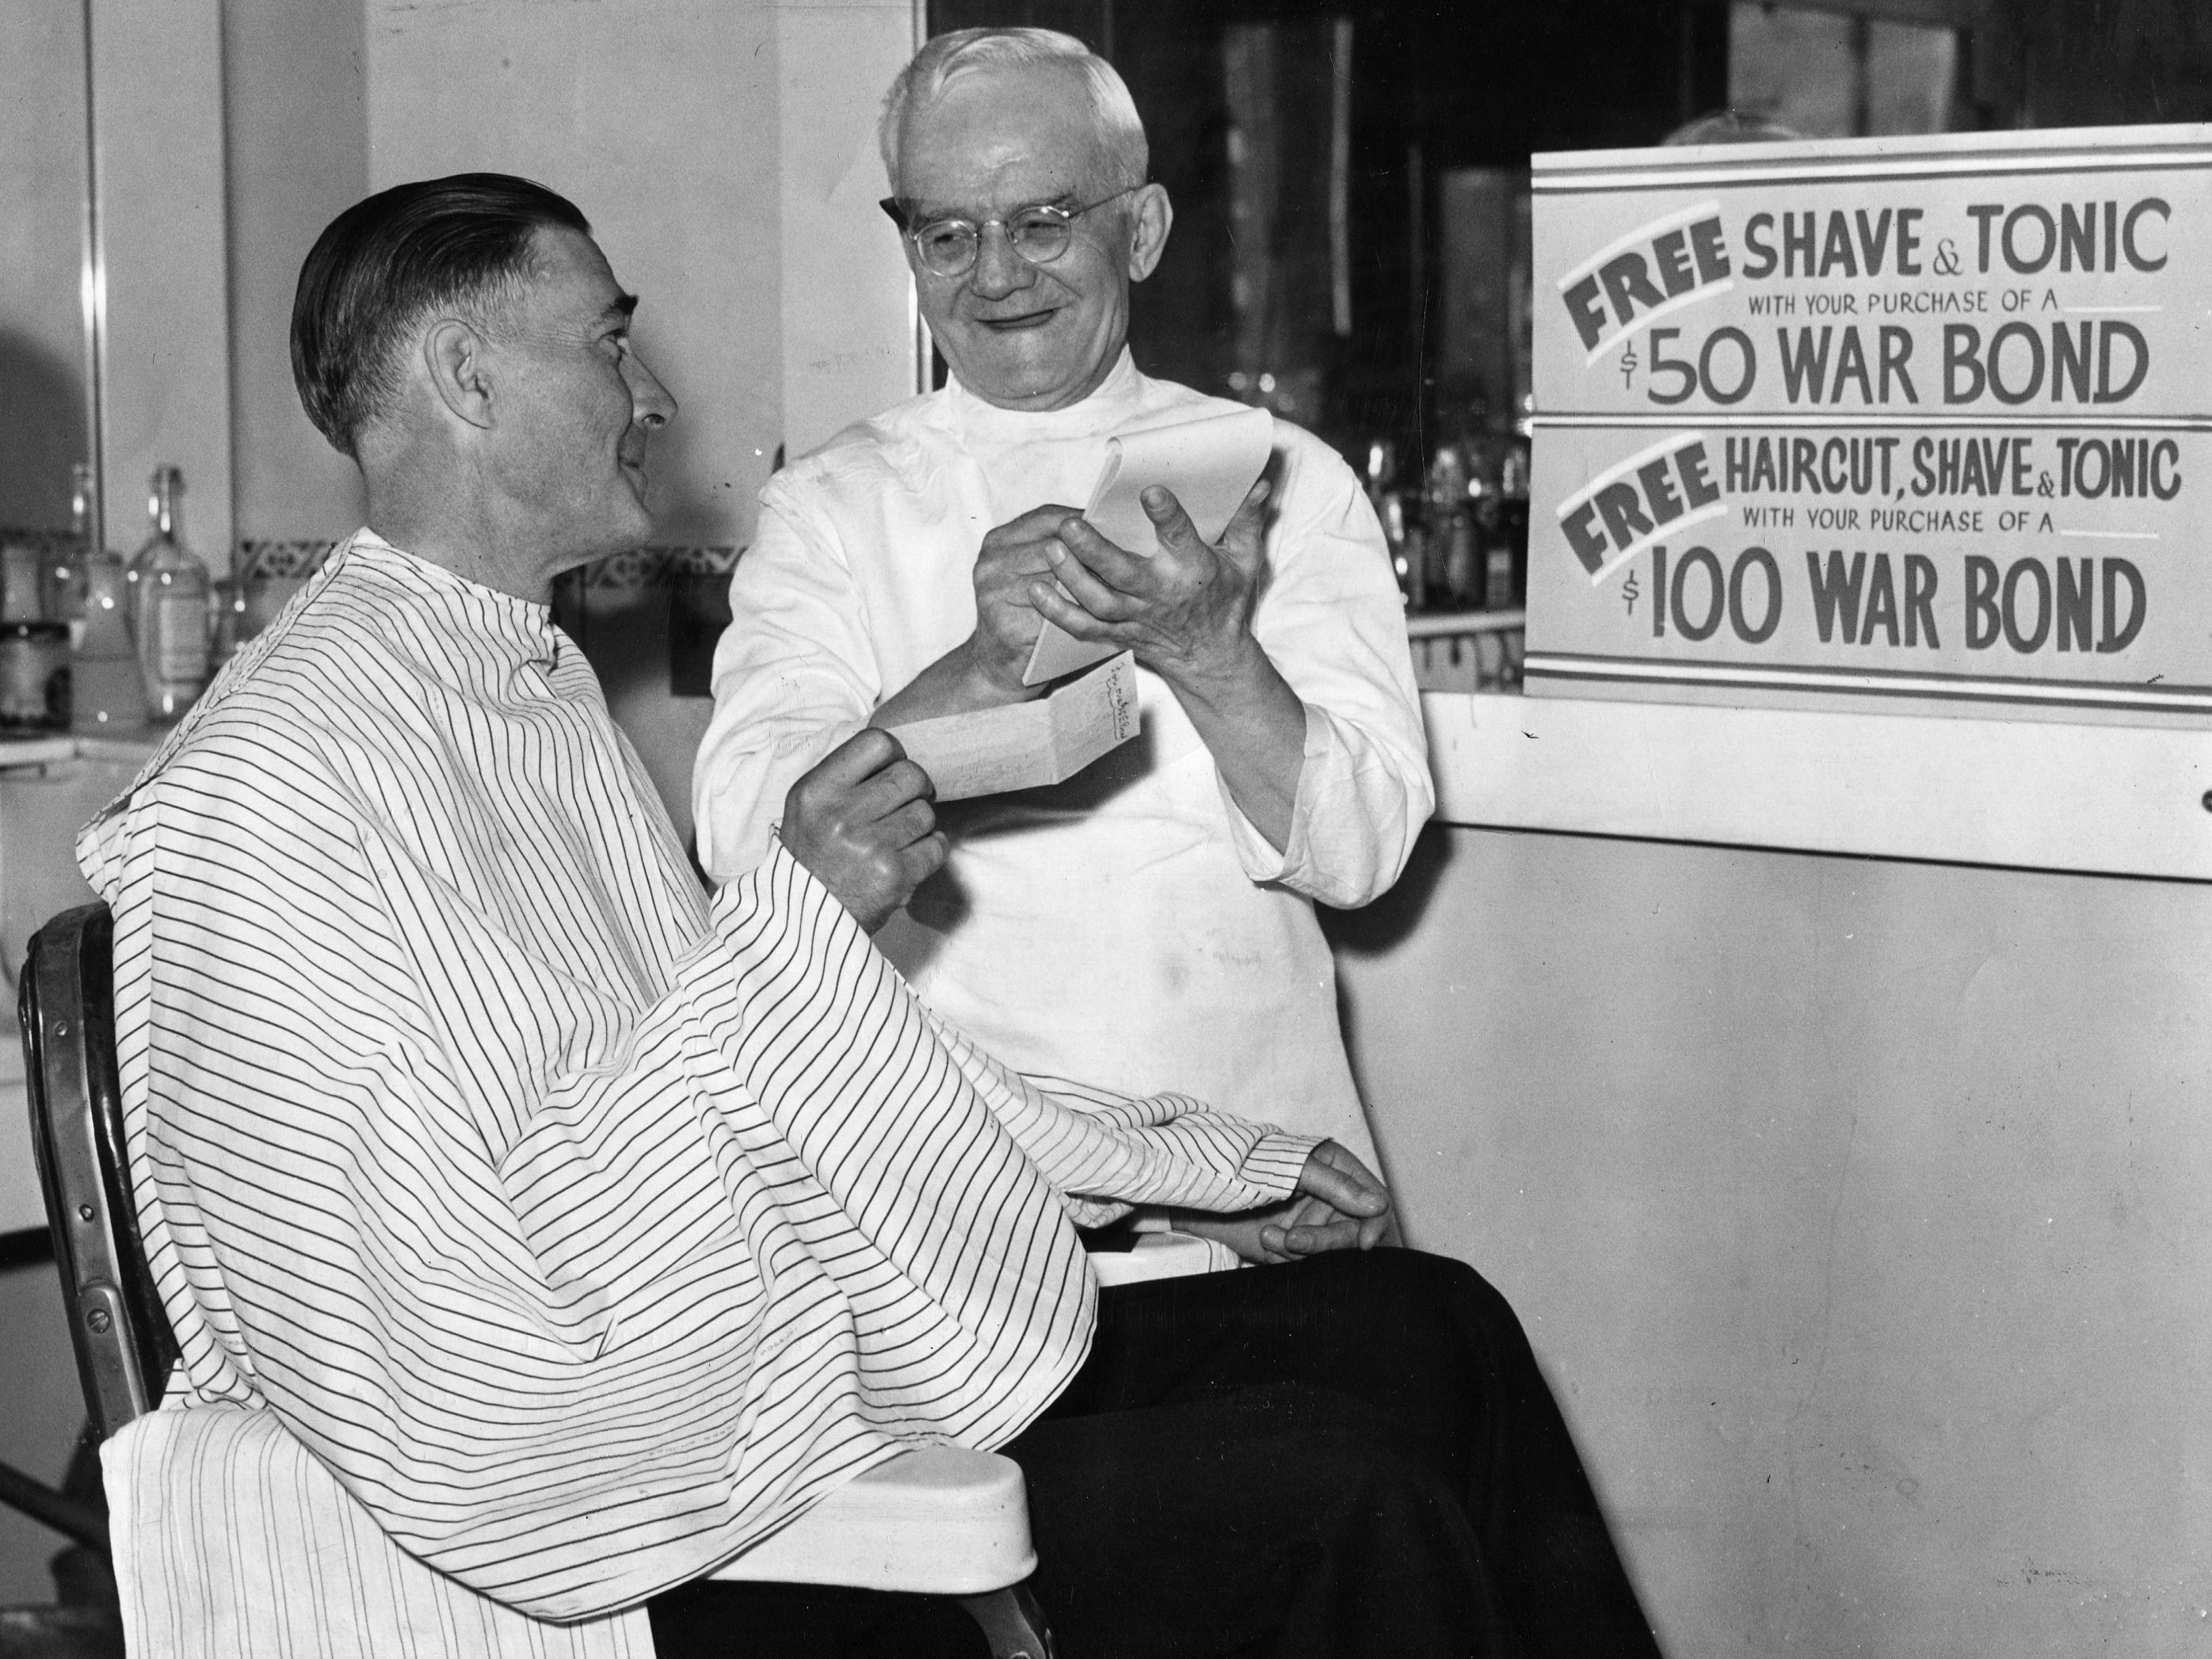 One of the incentives to buy war bonds in 1944 was a free haircut, shave and tonic with a $100 purchase.